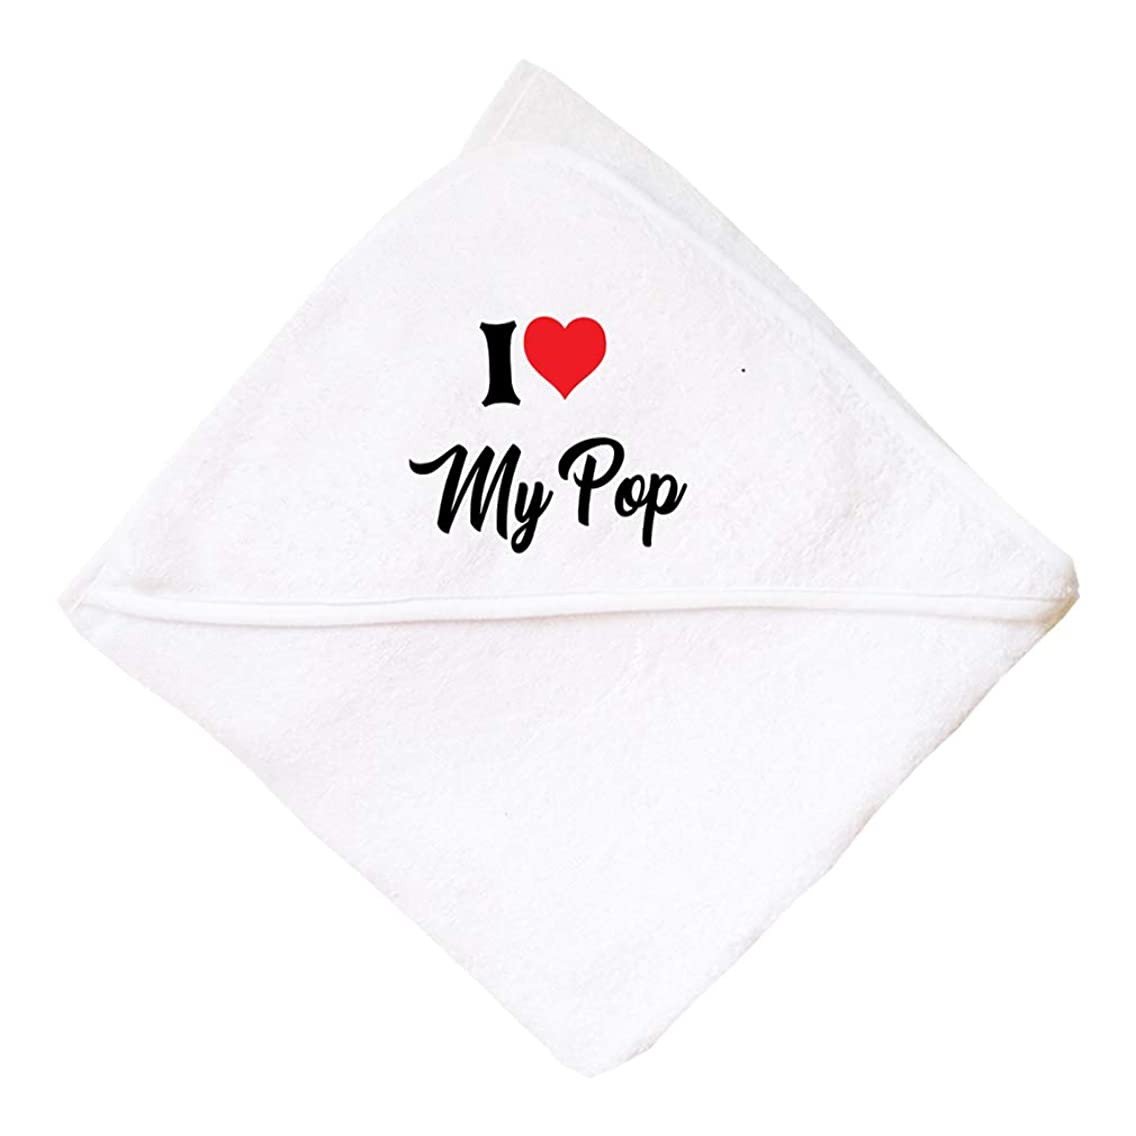 I Love My Pop Boys-Girls Cotton Baby Hooded Towel, One Size